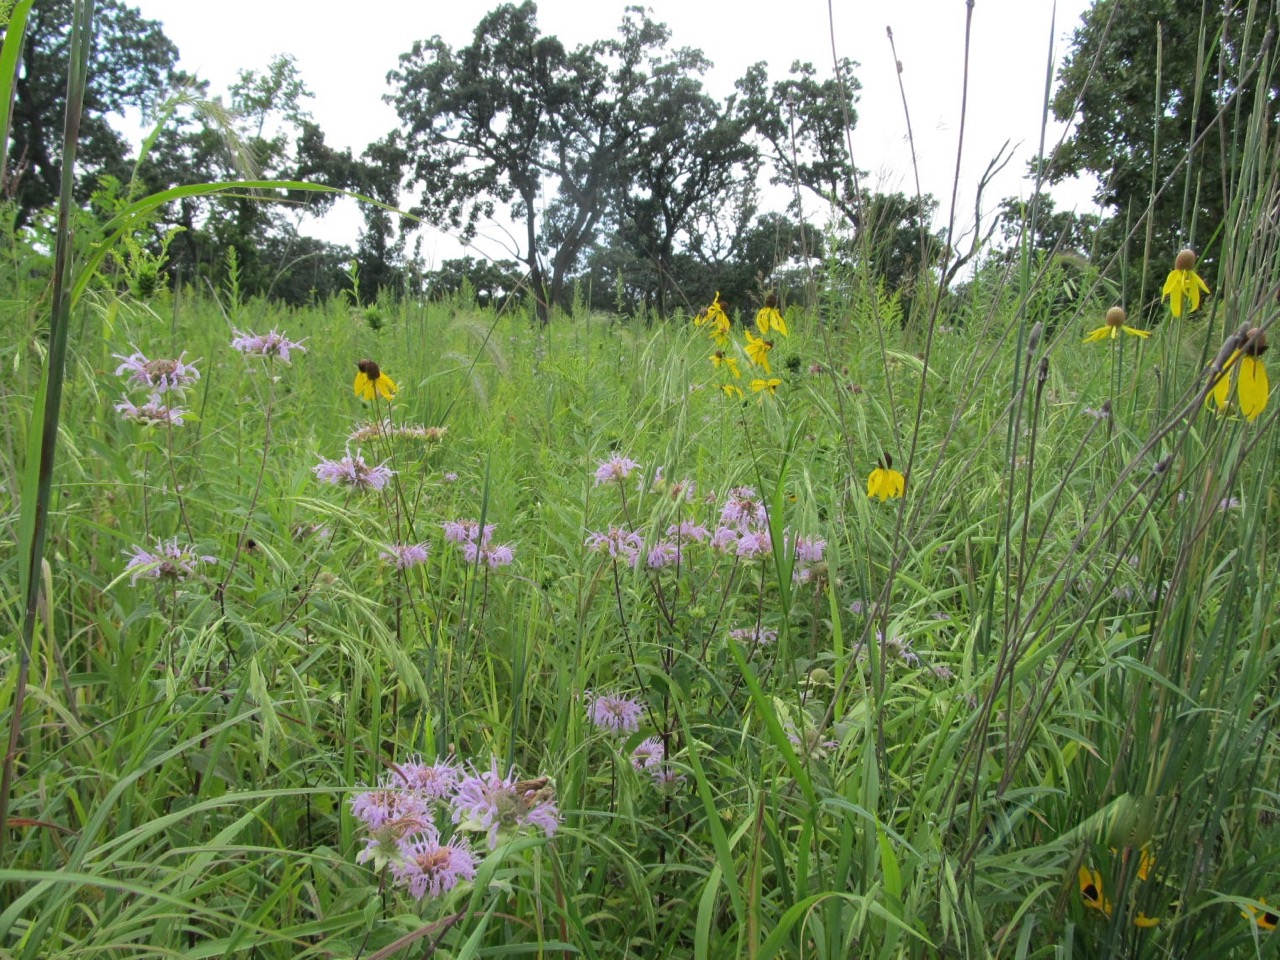 Native prairie wildflowers